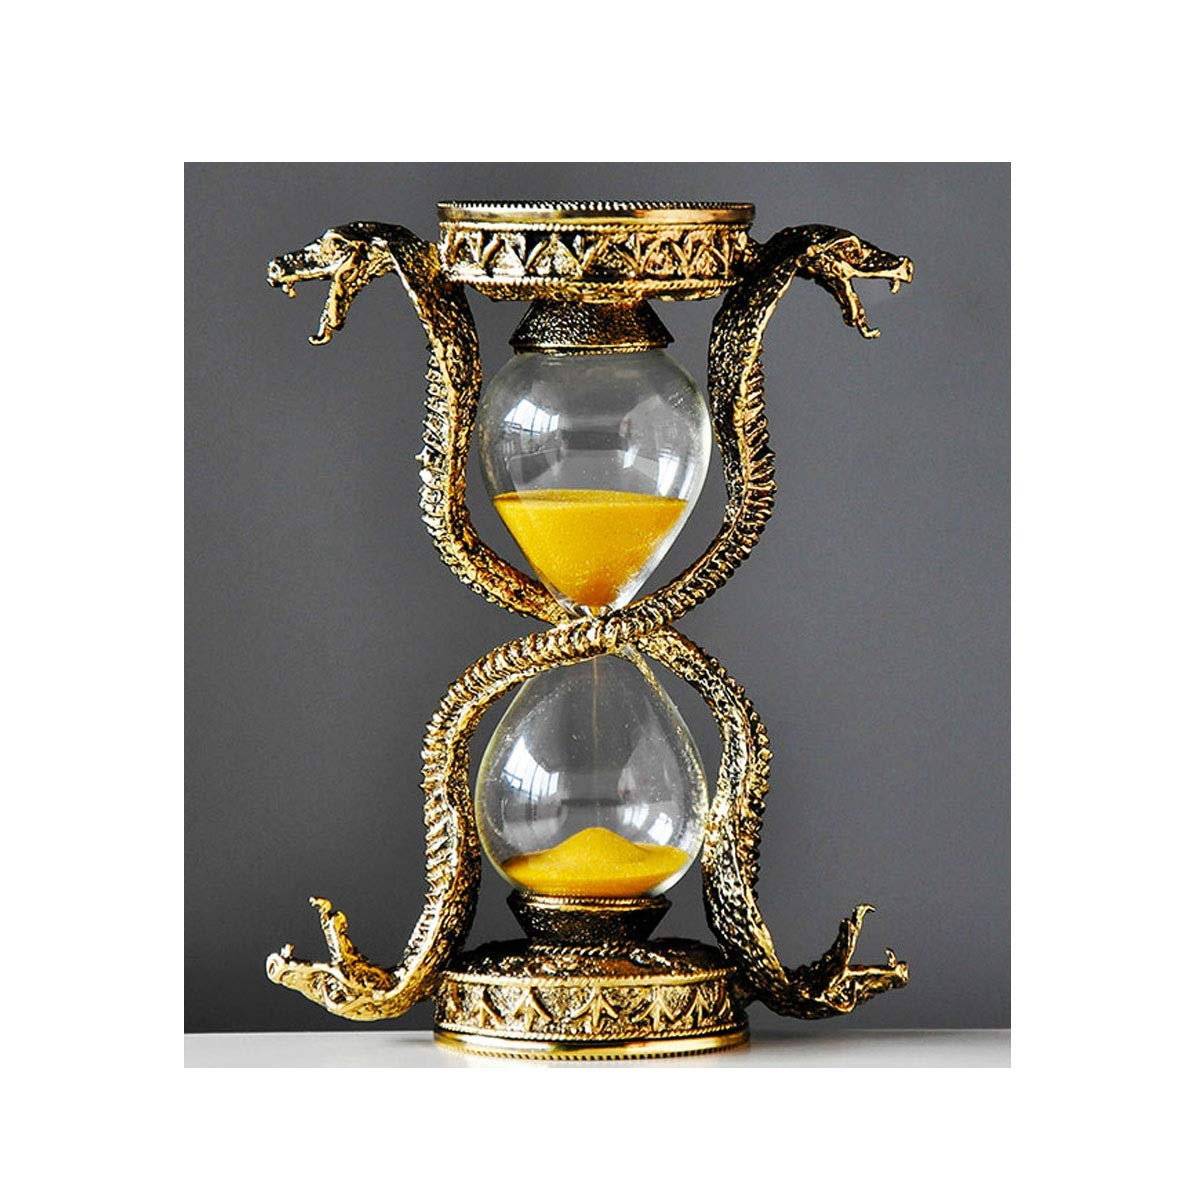 Jiansheng01 Hourglass, A Iron Material and Glass Made of A Desktop Atmosphere Decorative Hourglass, Suitable As A Gift, with A Box, Brass Color (12 15.5cm / 4.8 6.2 Inches) Comfortabl